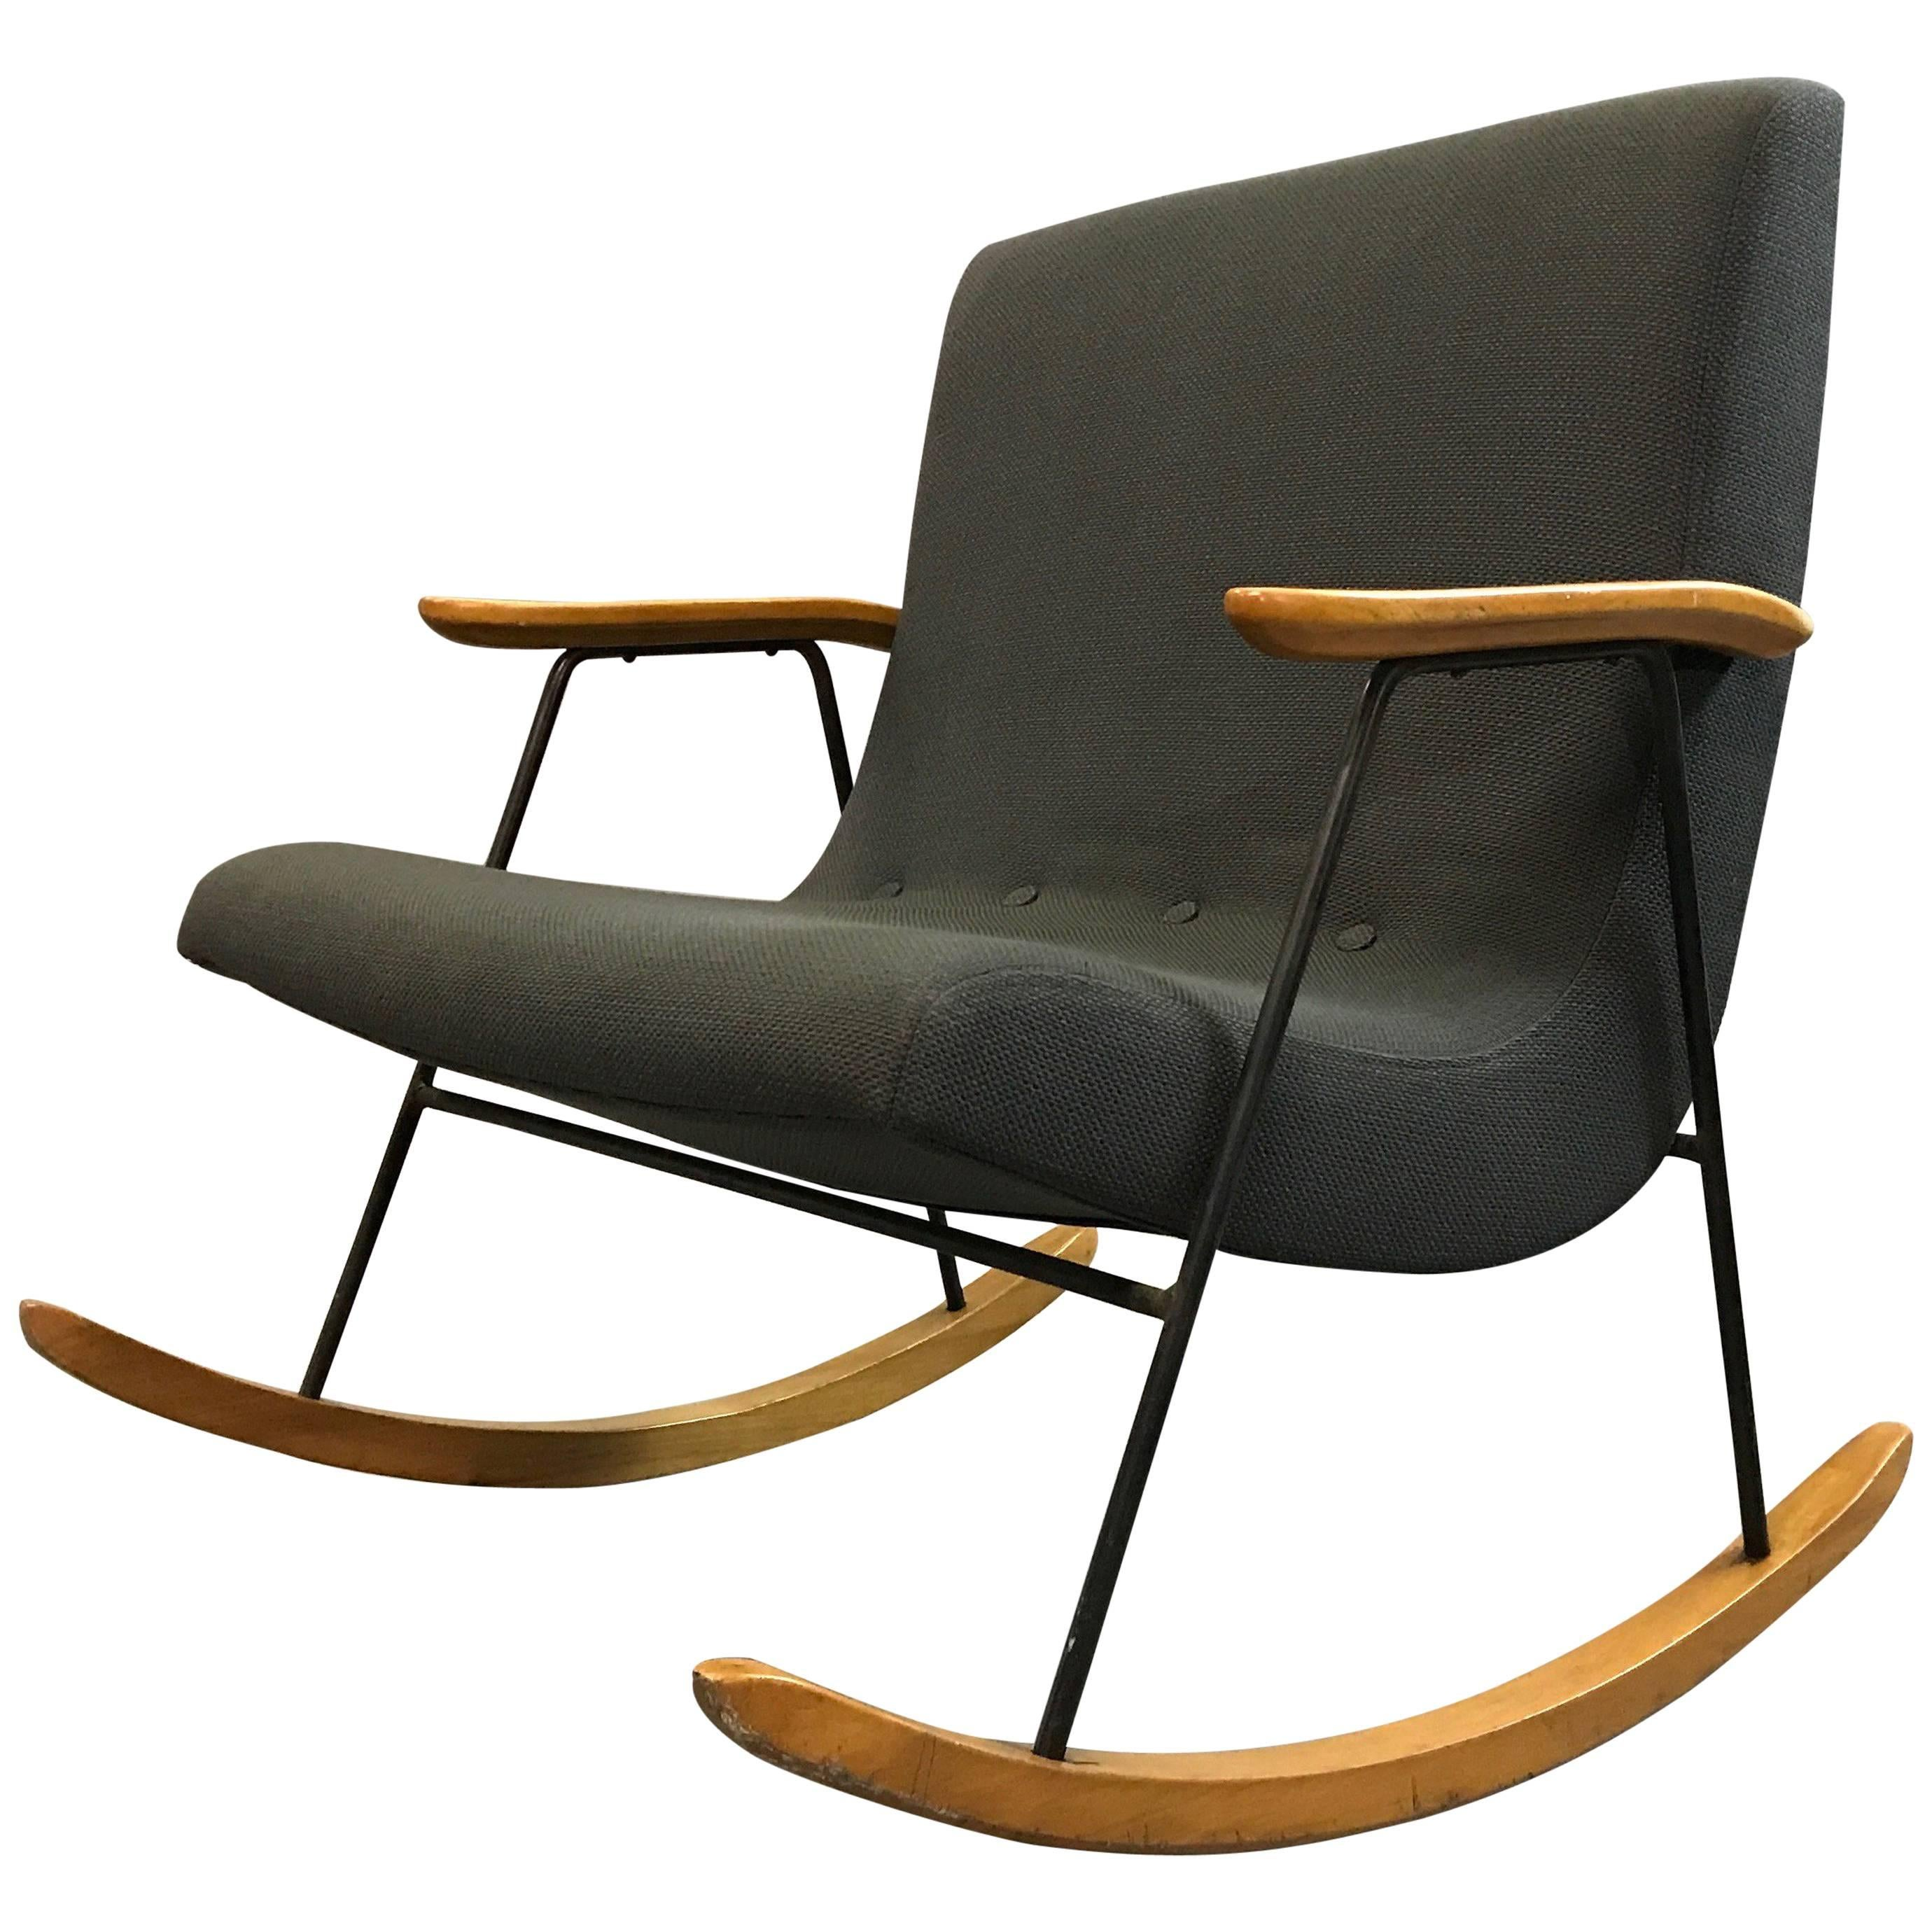 midcentury modern rocking chair by milo baughman